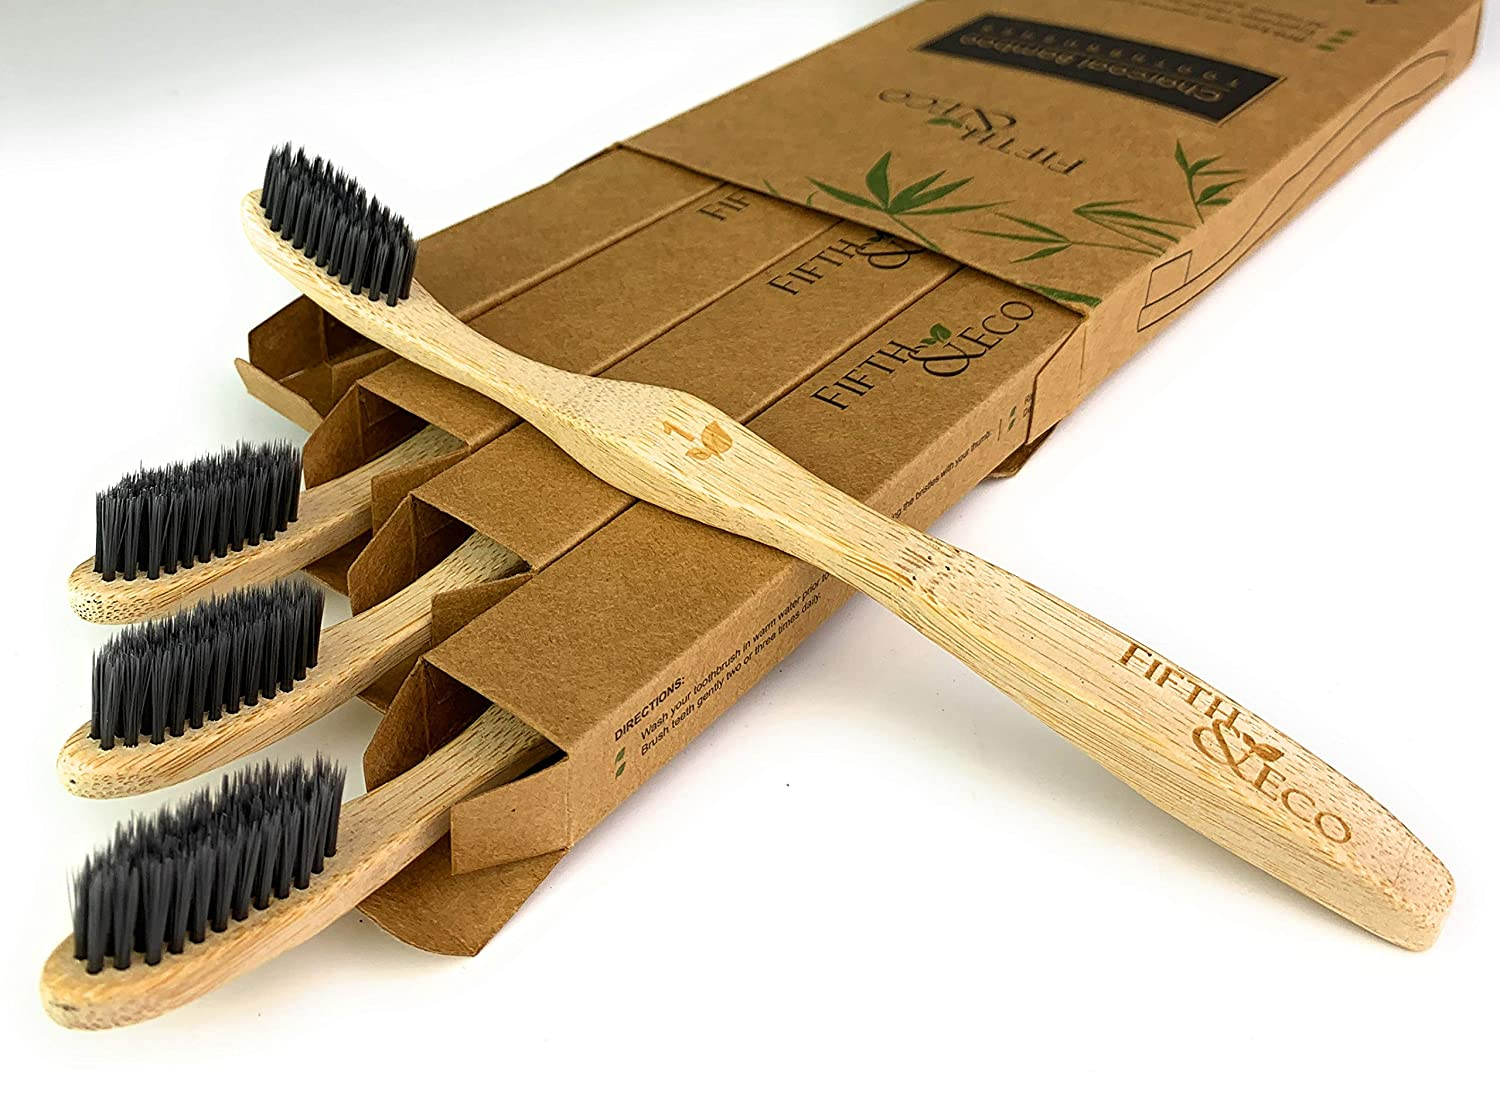 Amazon.com: Eco-friendly, Natural Charcoal Bamboo Toothbrush ...